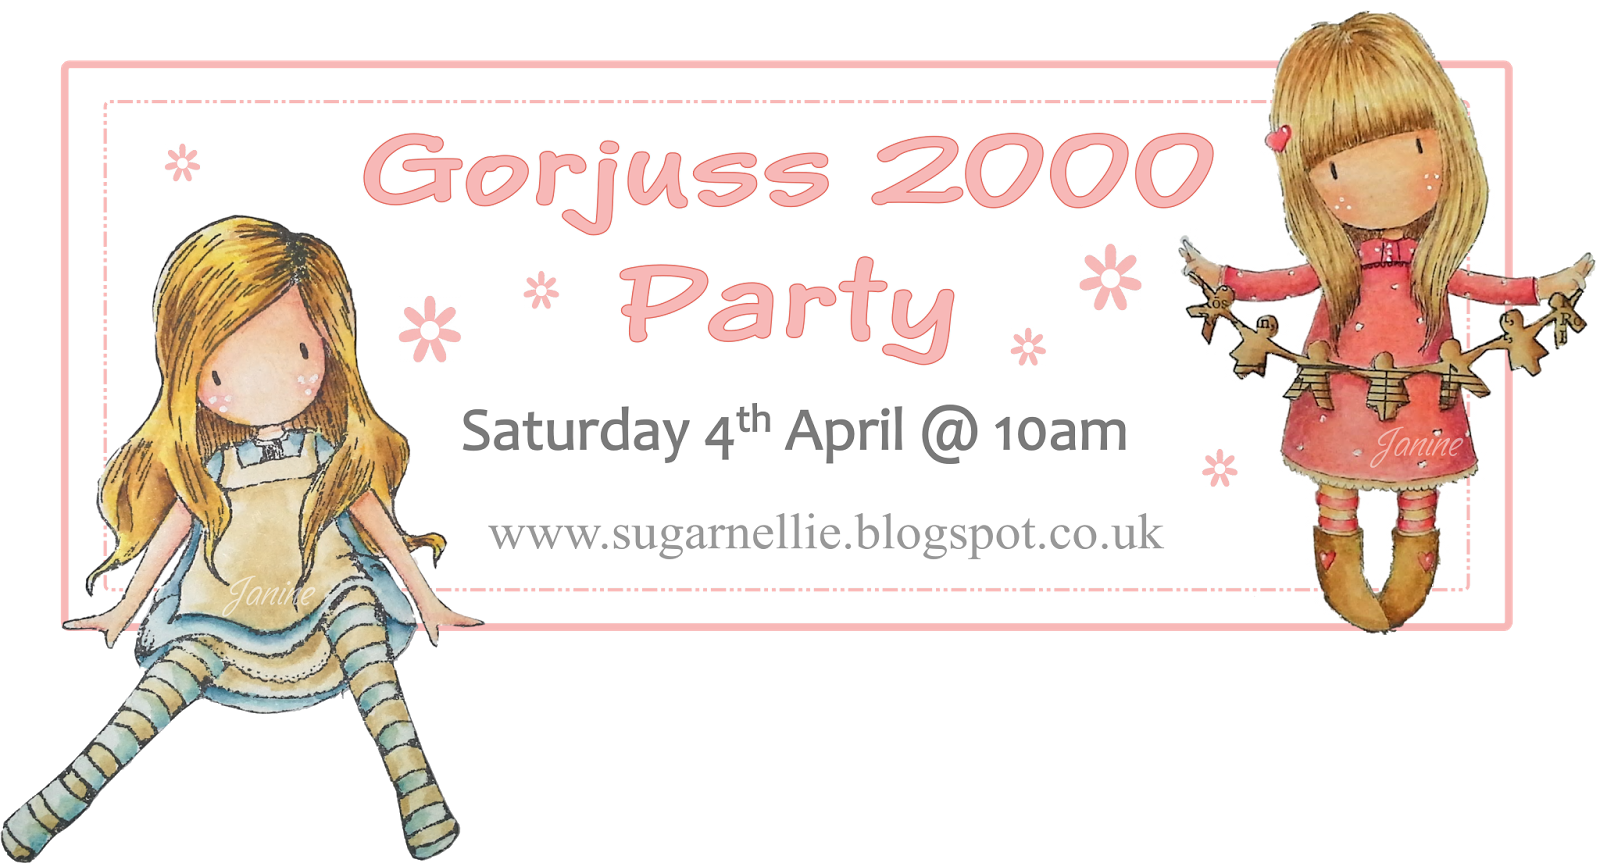 http://www.sugarnellie.blogspot.co.uk/2015/04/its-party-time.html